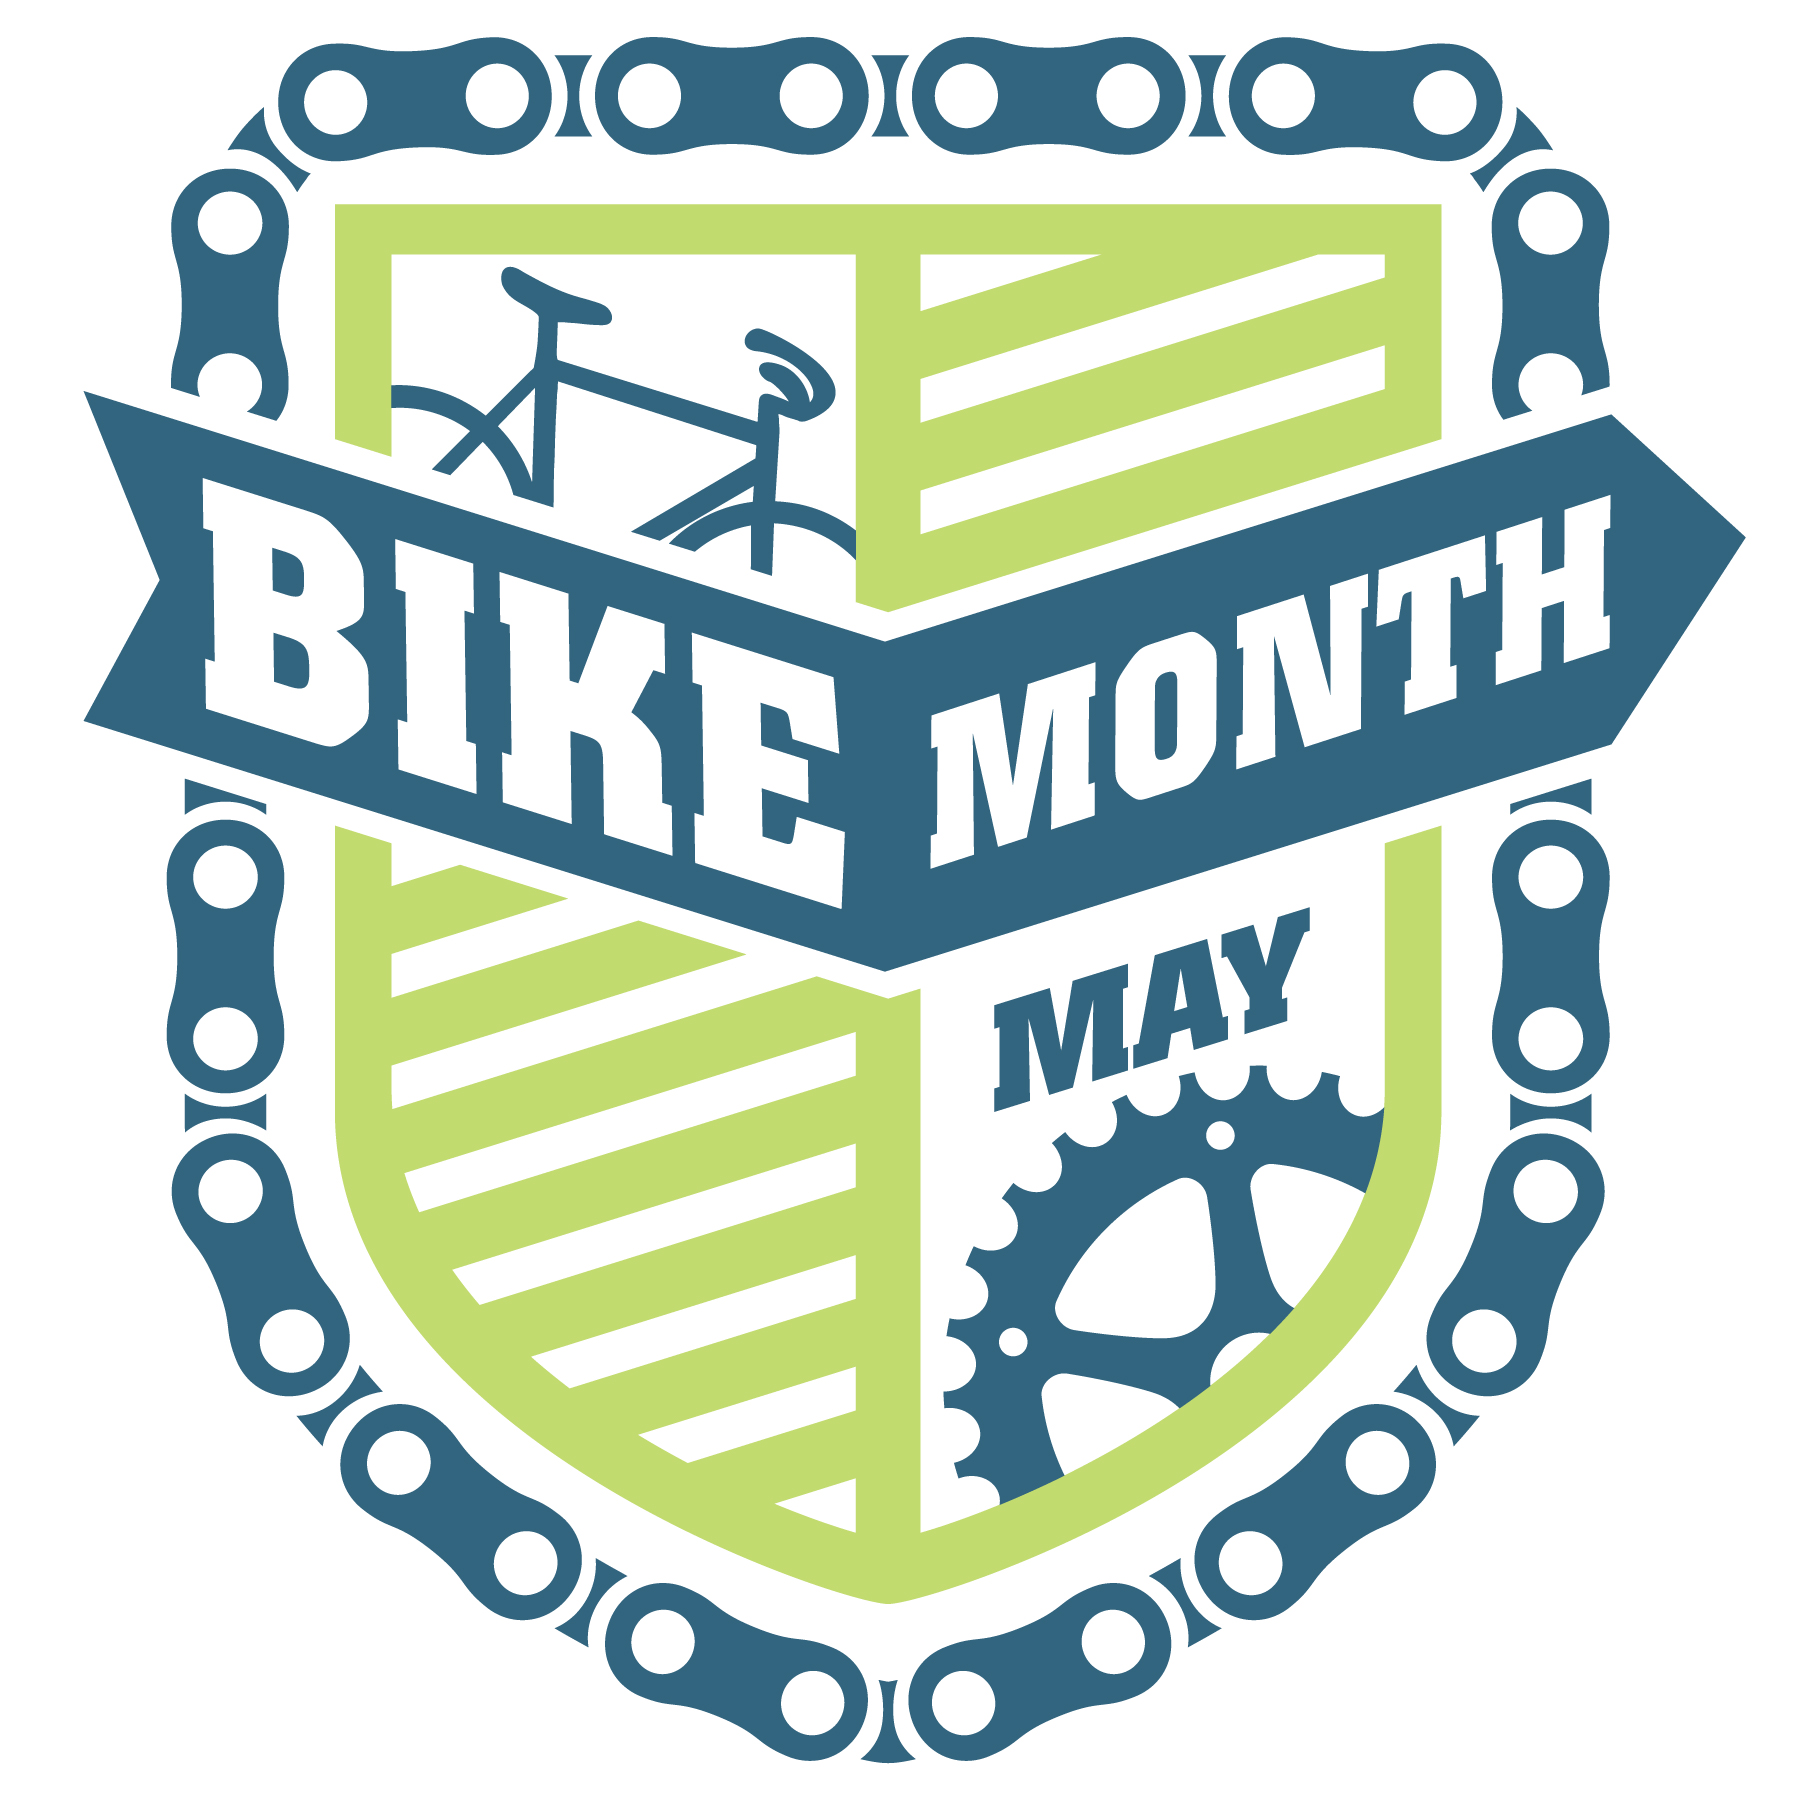 may is bike month 2018 official logo